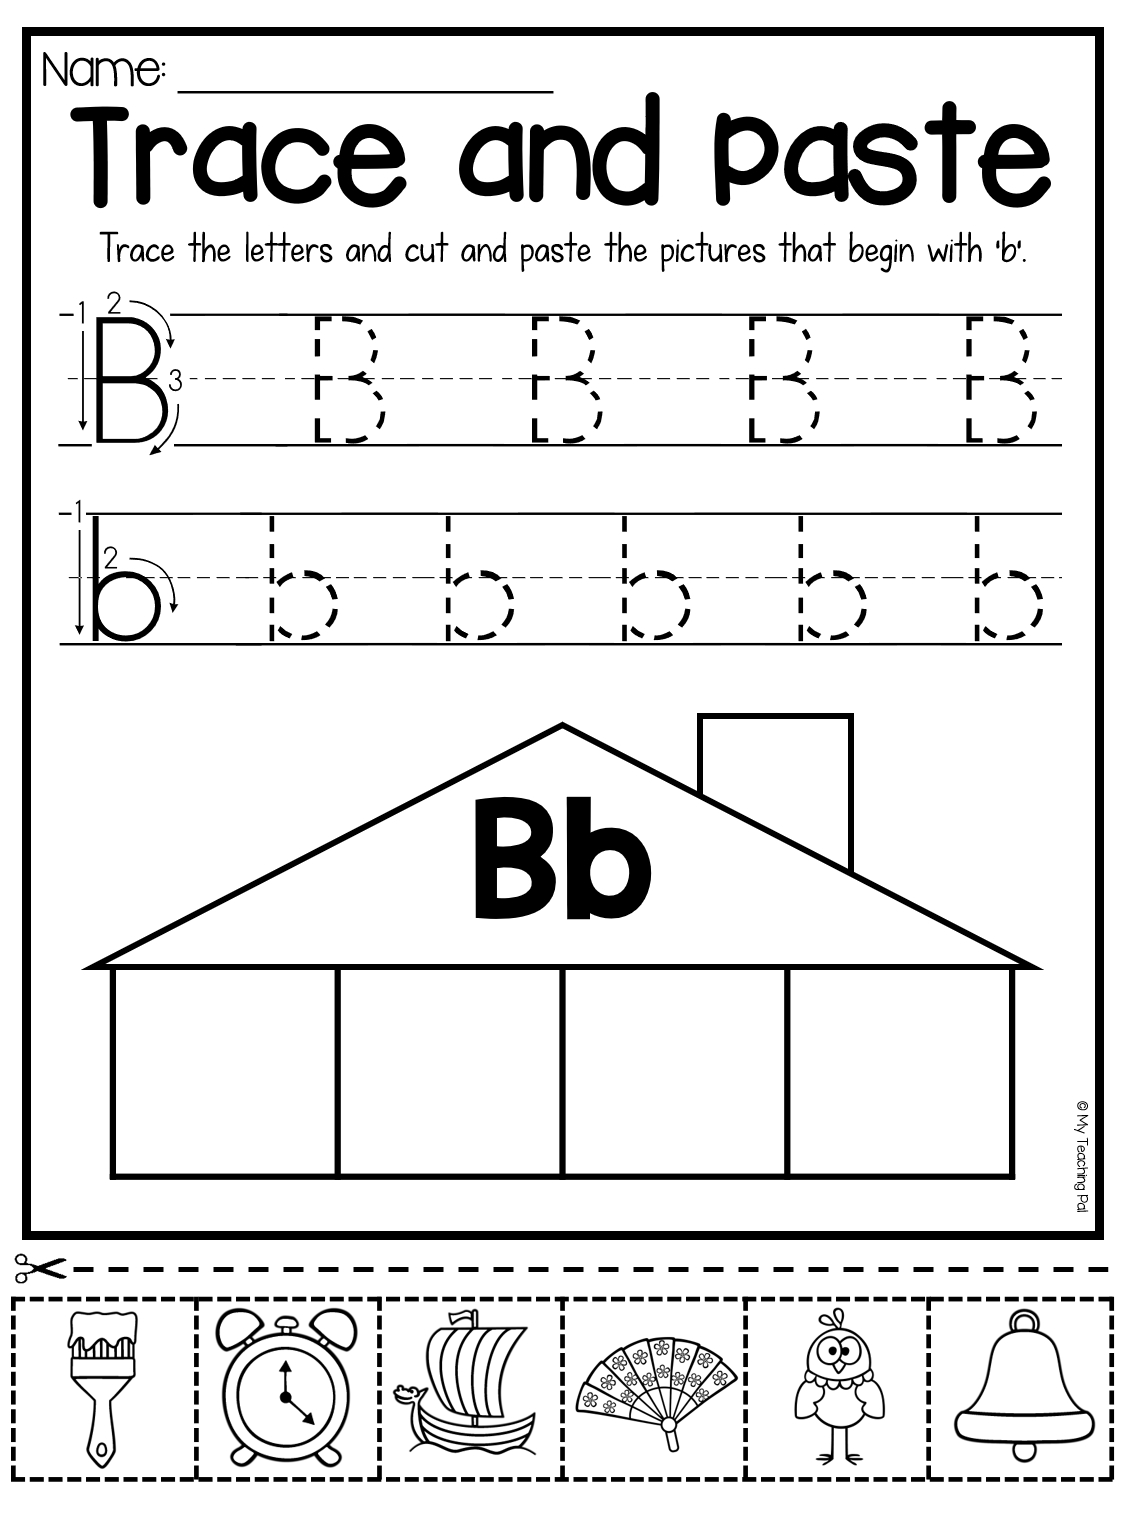 Beginning Sounds Worksheets - Trace And Paste | Beginning with Letter B Worksheets For First Grade